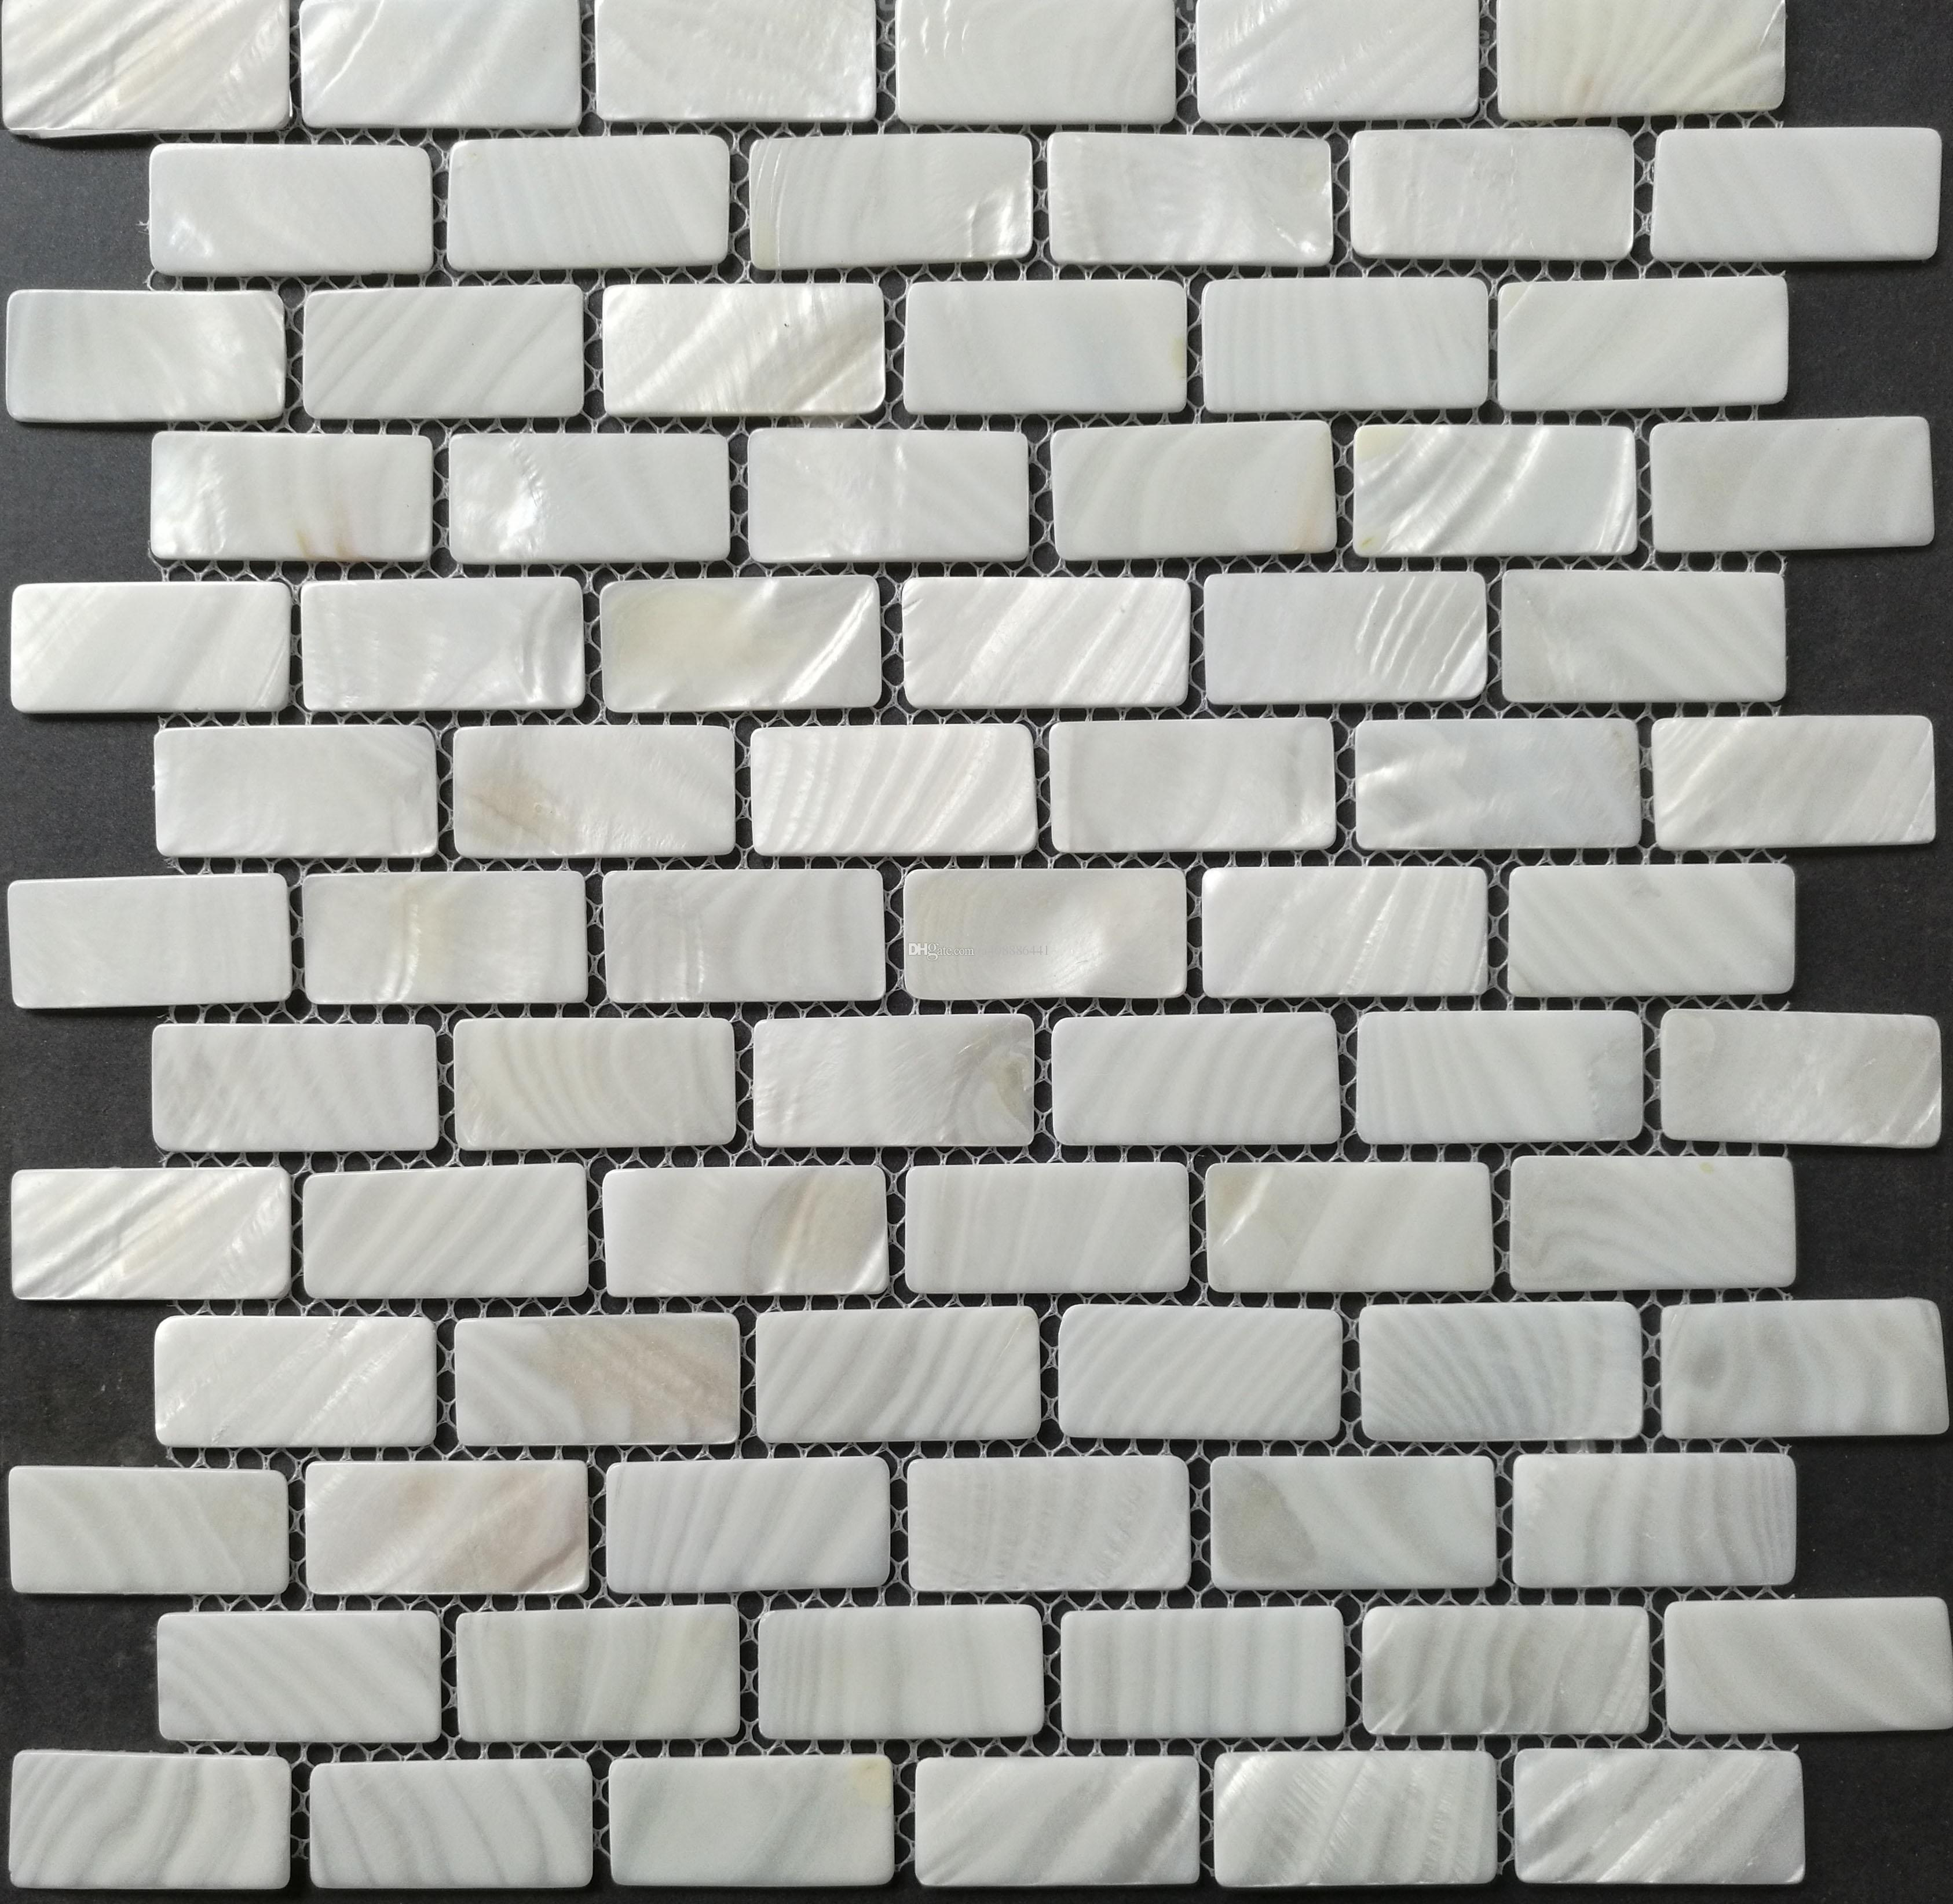 2019 New Item; BIG Shell Mosaic Tiles;White Brick Tiles;23*48*2 Natural  Color;Factory Direct Sale Decoration Material;Kitchen Backsplash Tiles From  ...